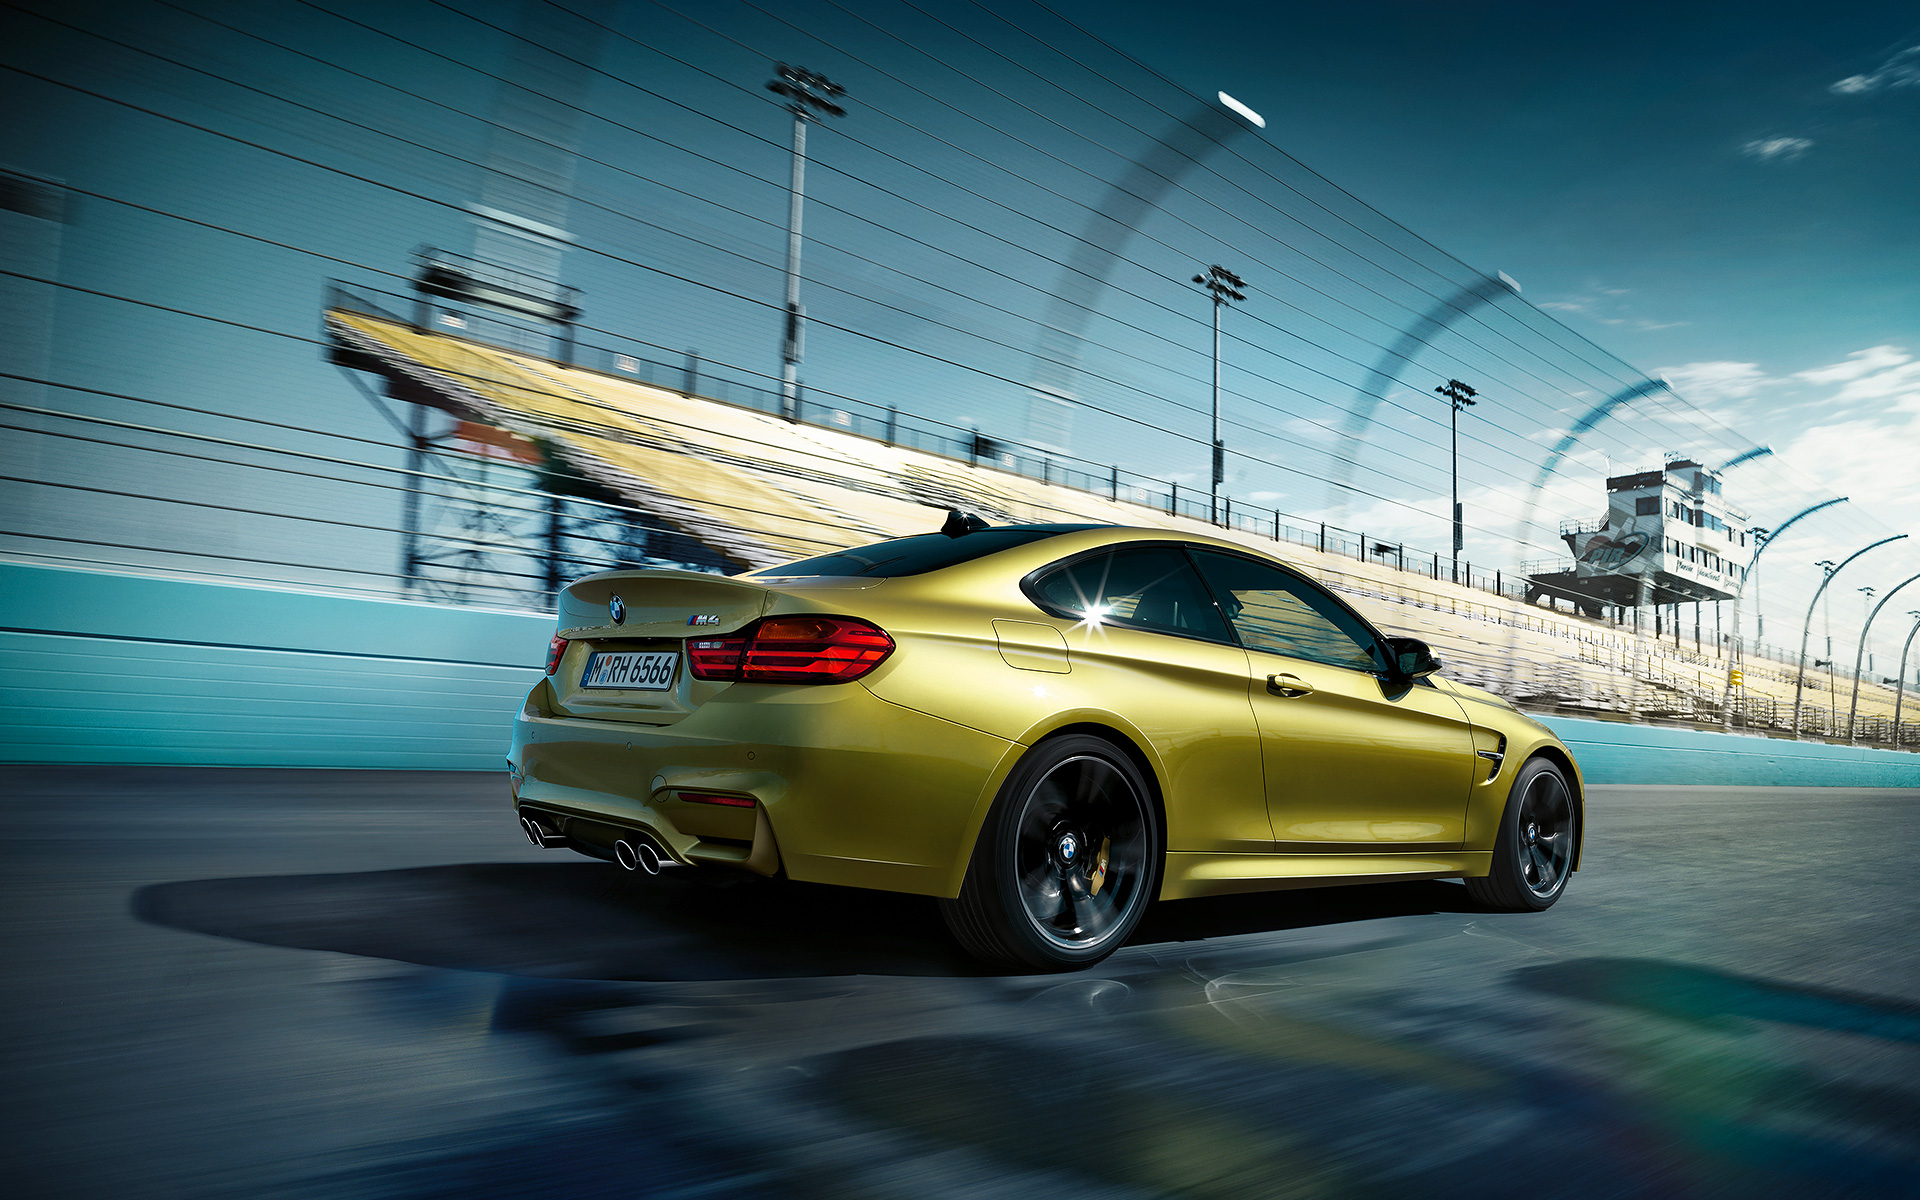 Free Download 2015 Bmw M4 Coupe F82 Official Specs Wallpapers Videos Photos 1920x1200 For Your Desktop Mobile Tablet Explore 47 Bmw M4 Wallpaper Bmw M4 Hd Wallpaper Bmw Background